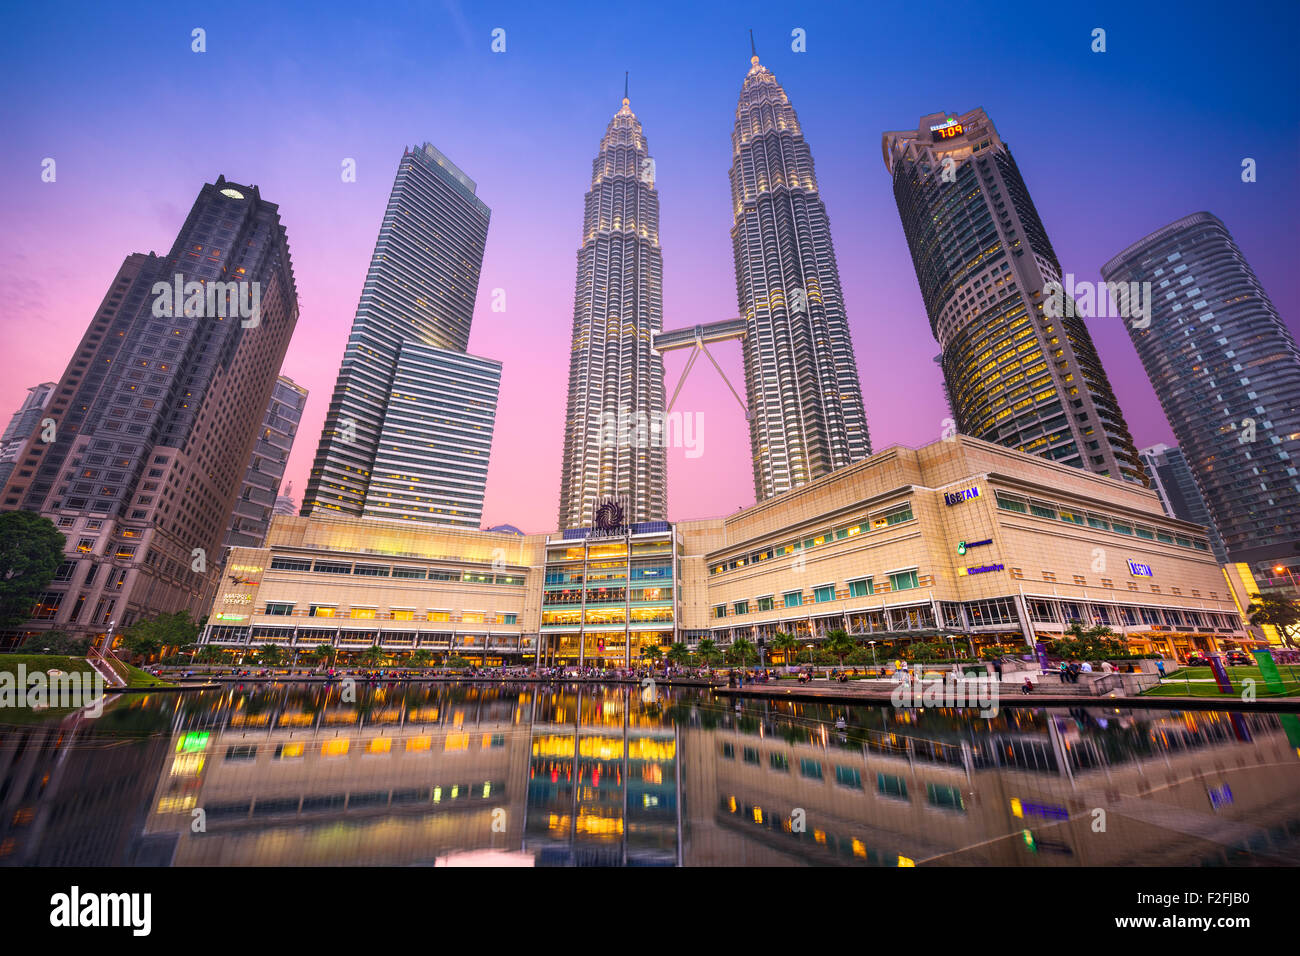 The Petronas Towers viewed from KLCC Park at twilight. - Stock Image